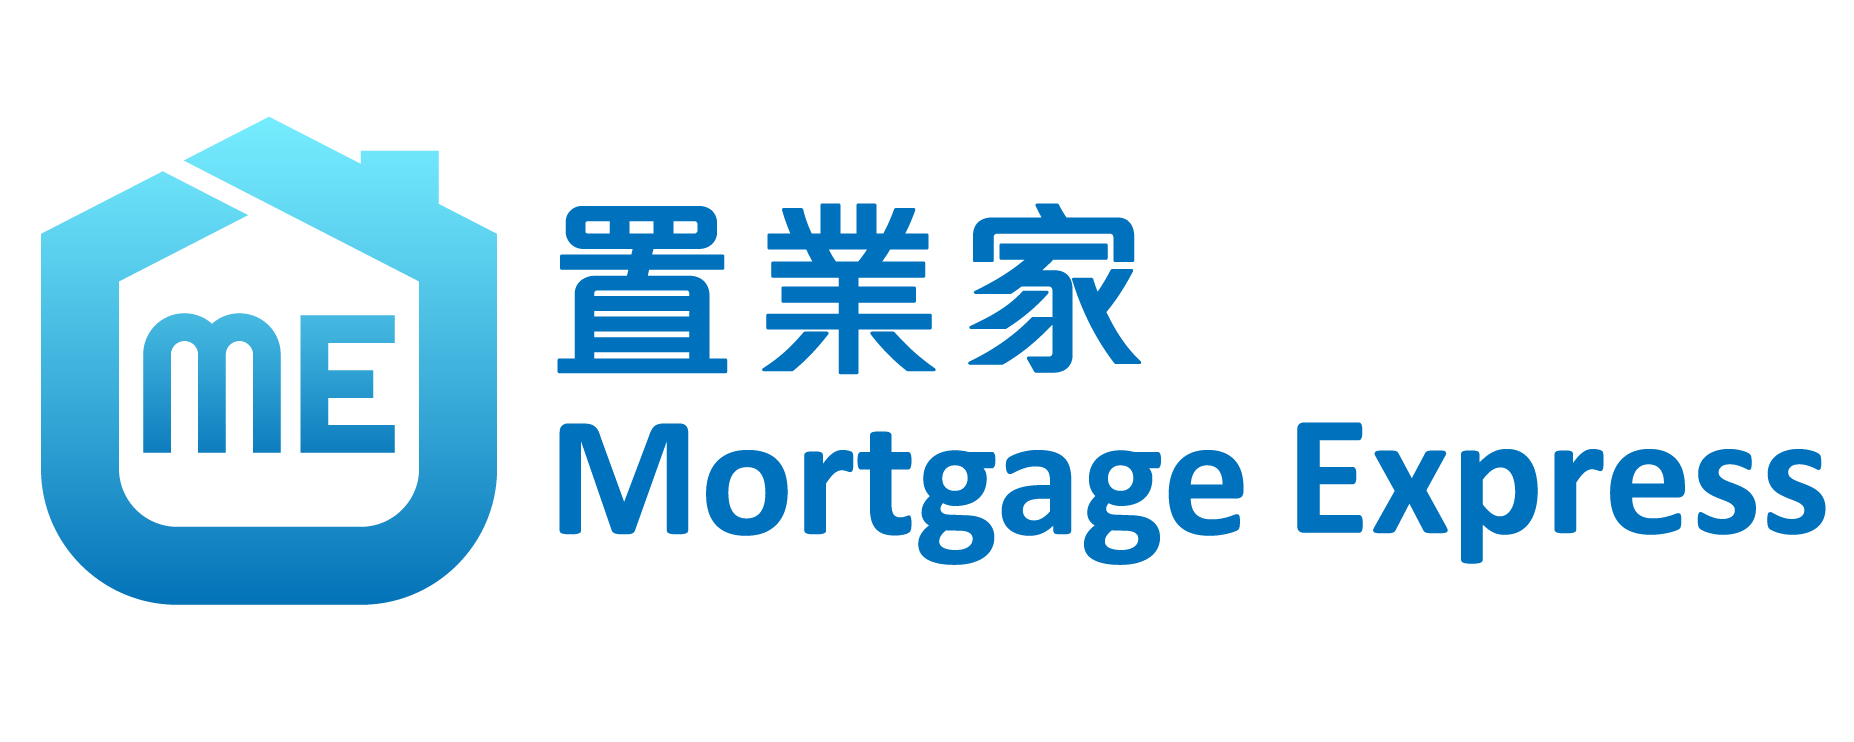 Mortgage Express  按揭轉介